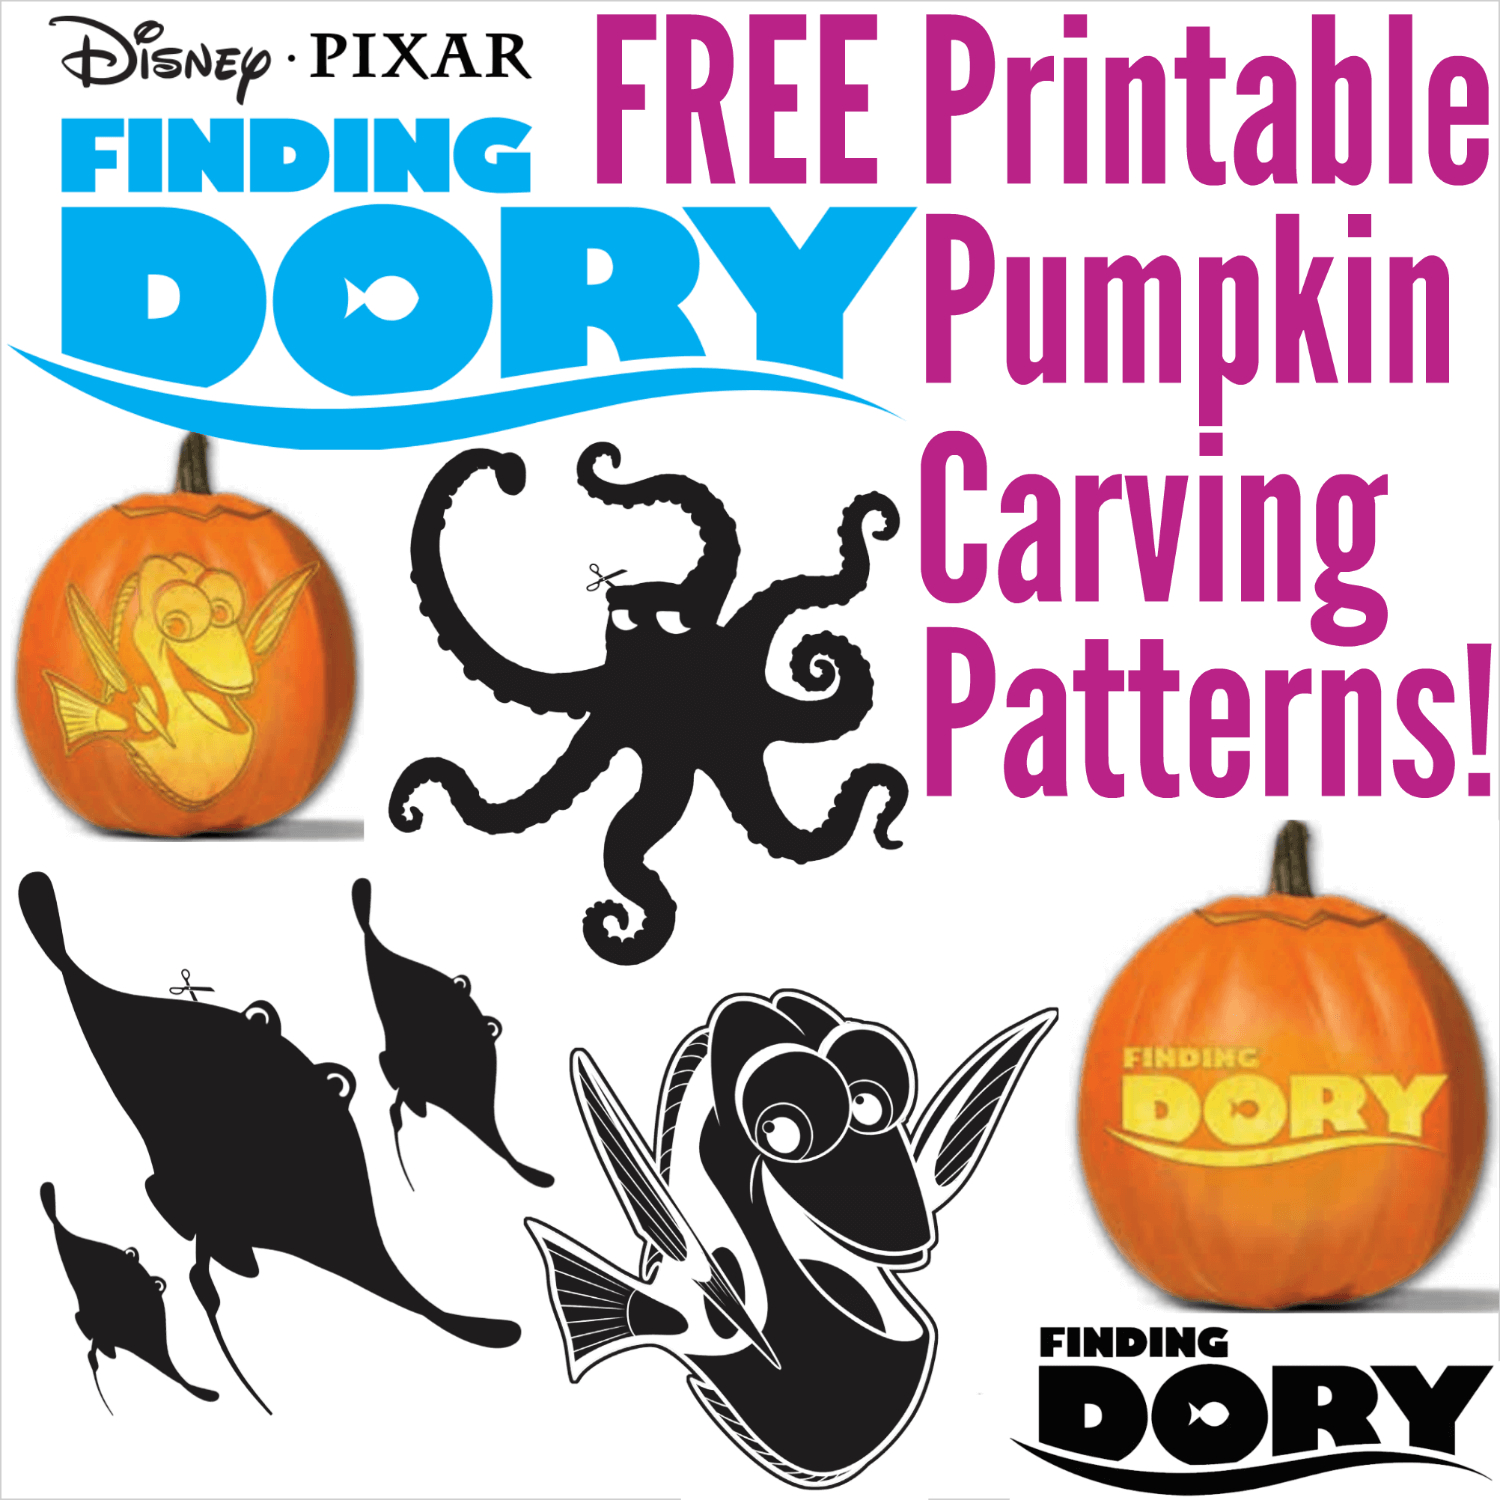 Free Finding Dory Pumpkin Carving Patterns To Print! - Pumpkin Carving Patterns Free Printable